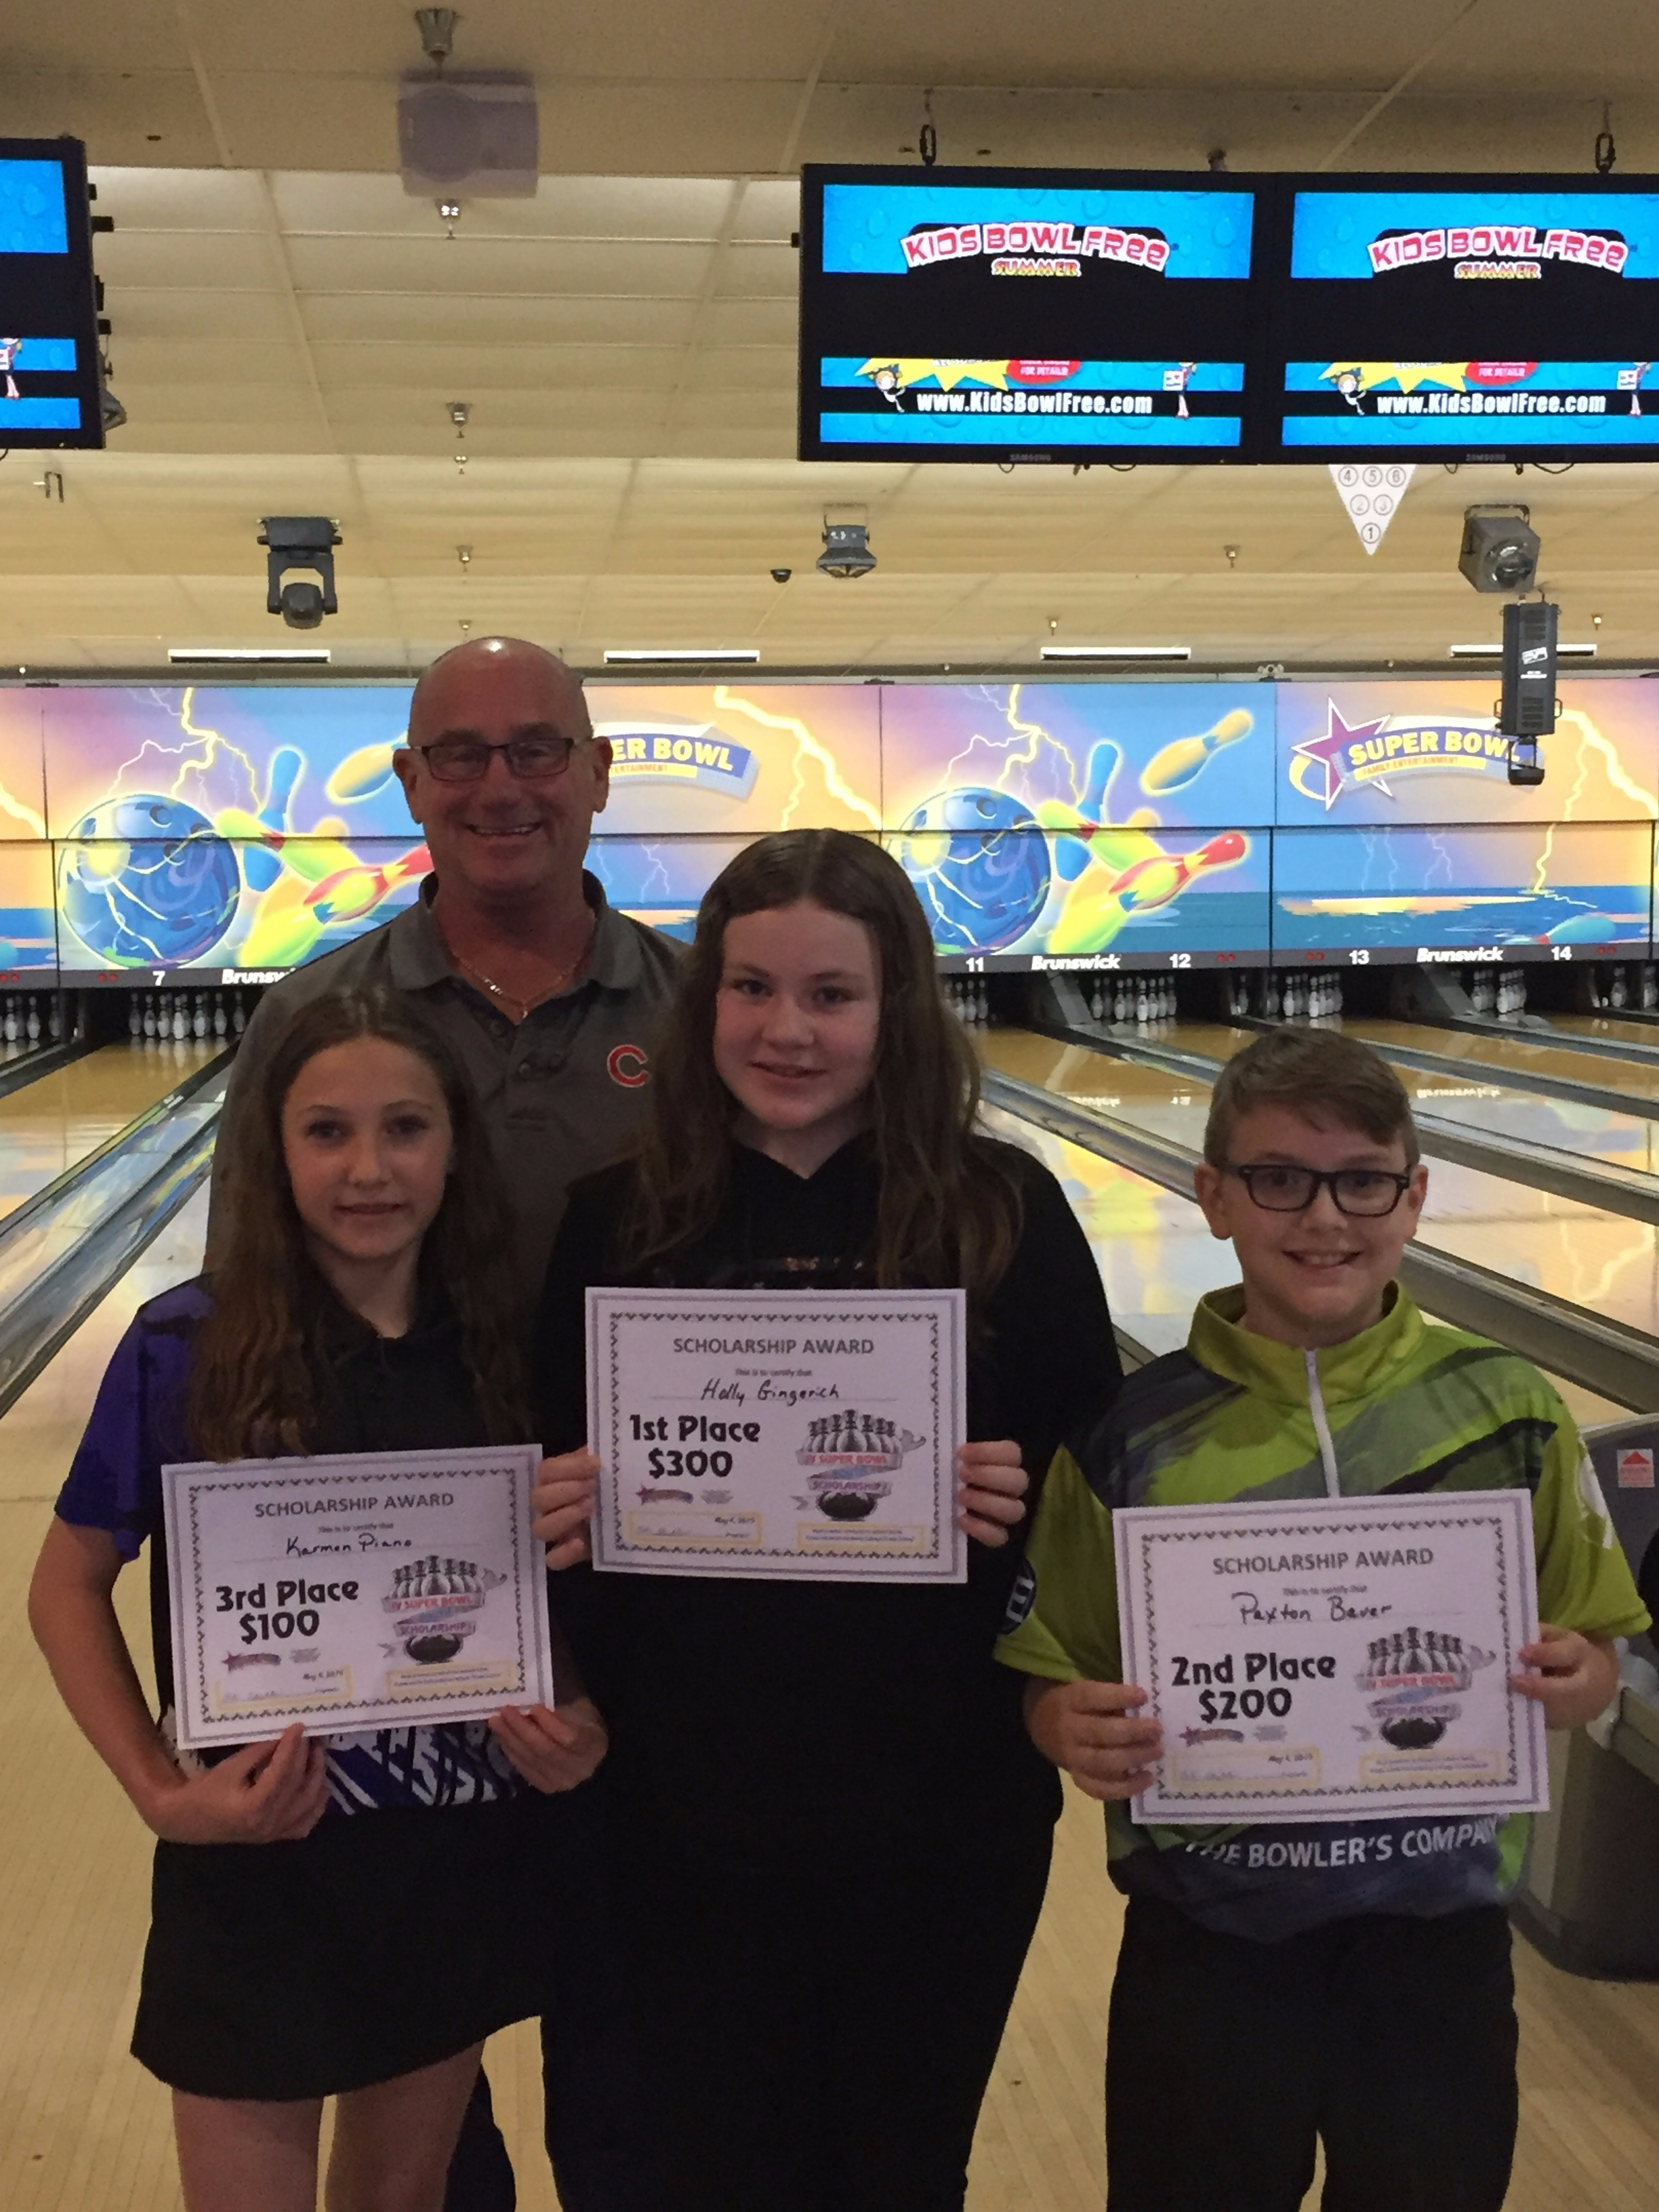 (L-R) Karmen Piano 3rd, Bob Stubler, Holly Gingerich 1st, Paxton Bauer 2nd.